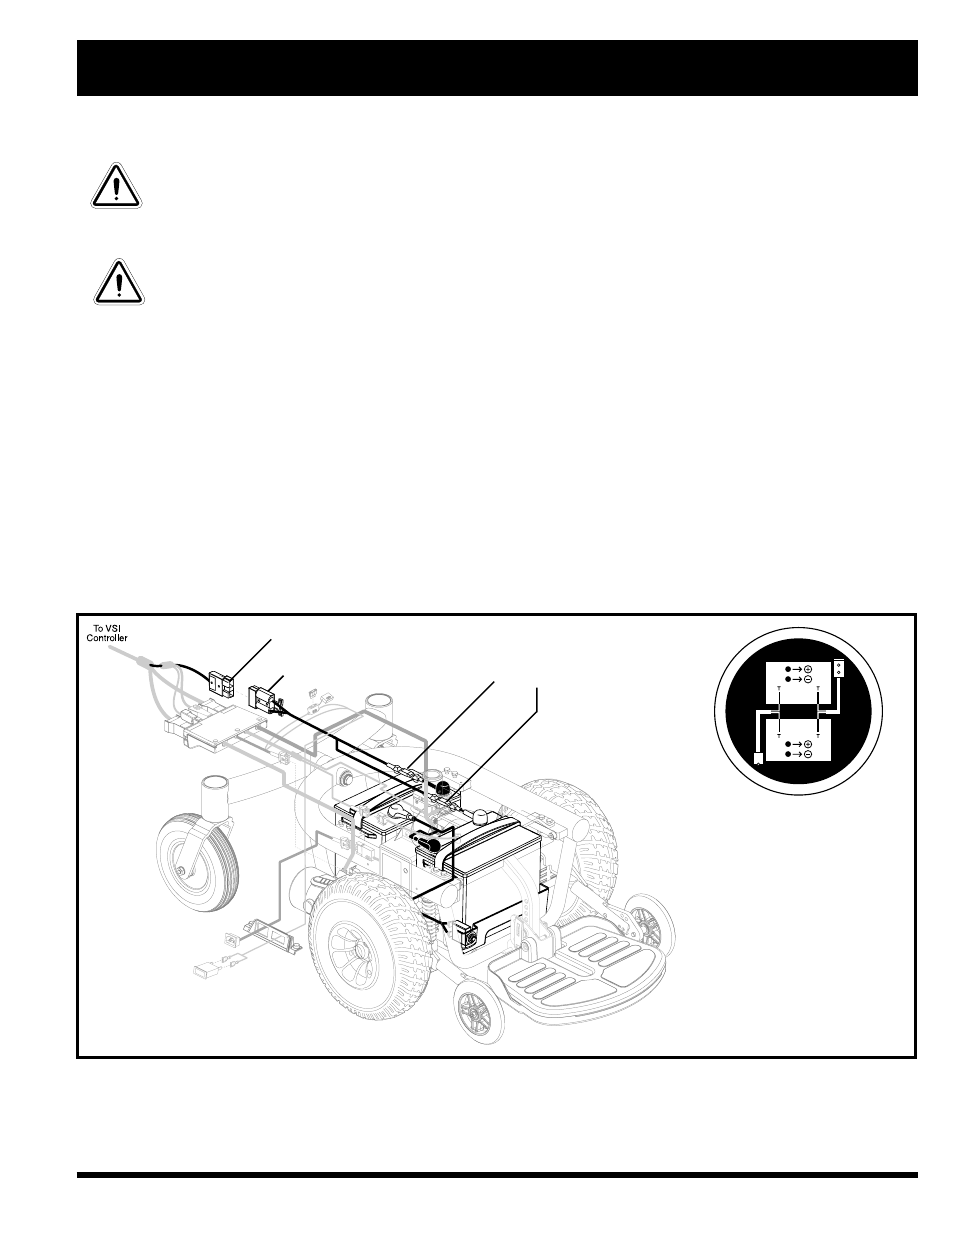 medium resolution of pride mobility jazzy 1103 ultra user manual page 51 55